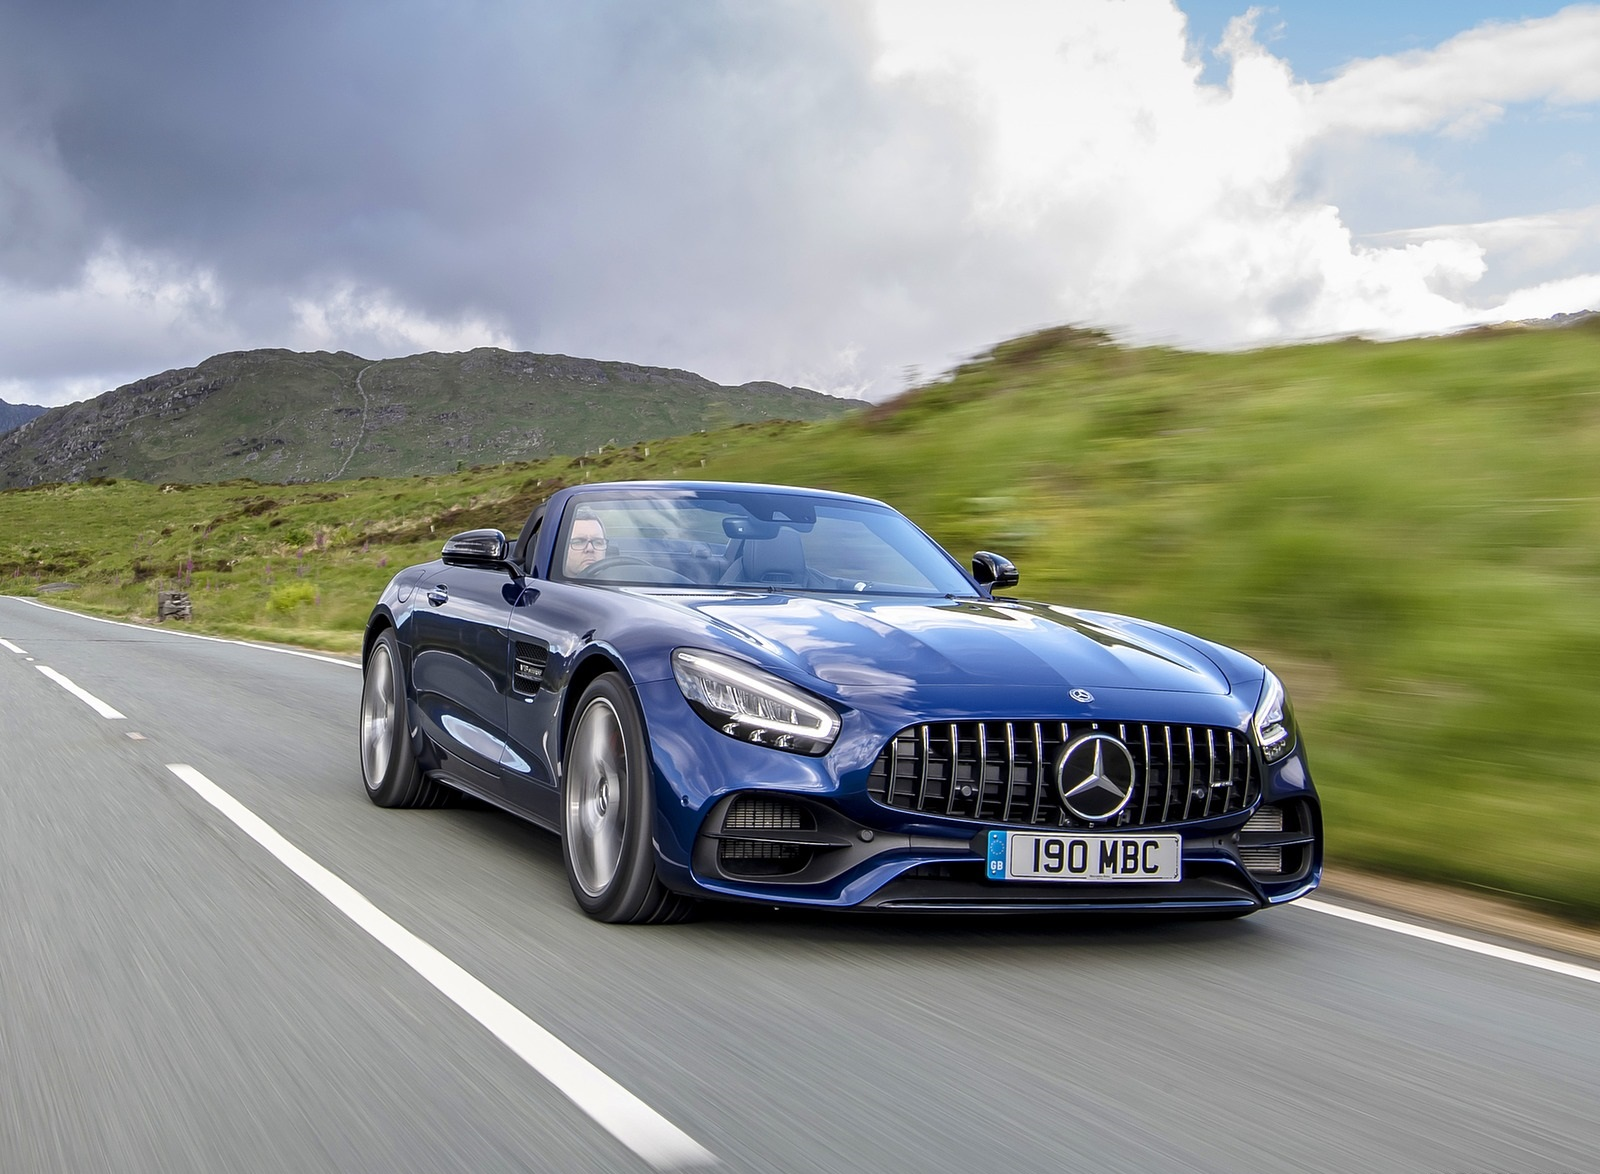 2020 Mercedes-AMG GT S Roadster (UK-Spec) Front Three-Quarter Wallpapers (1)